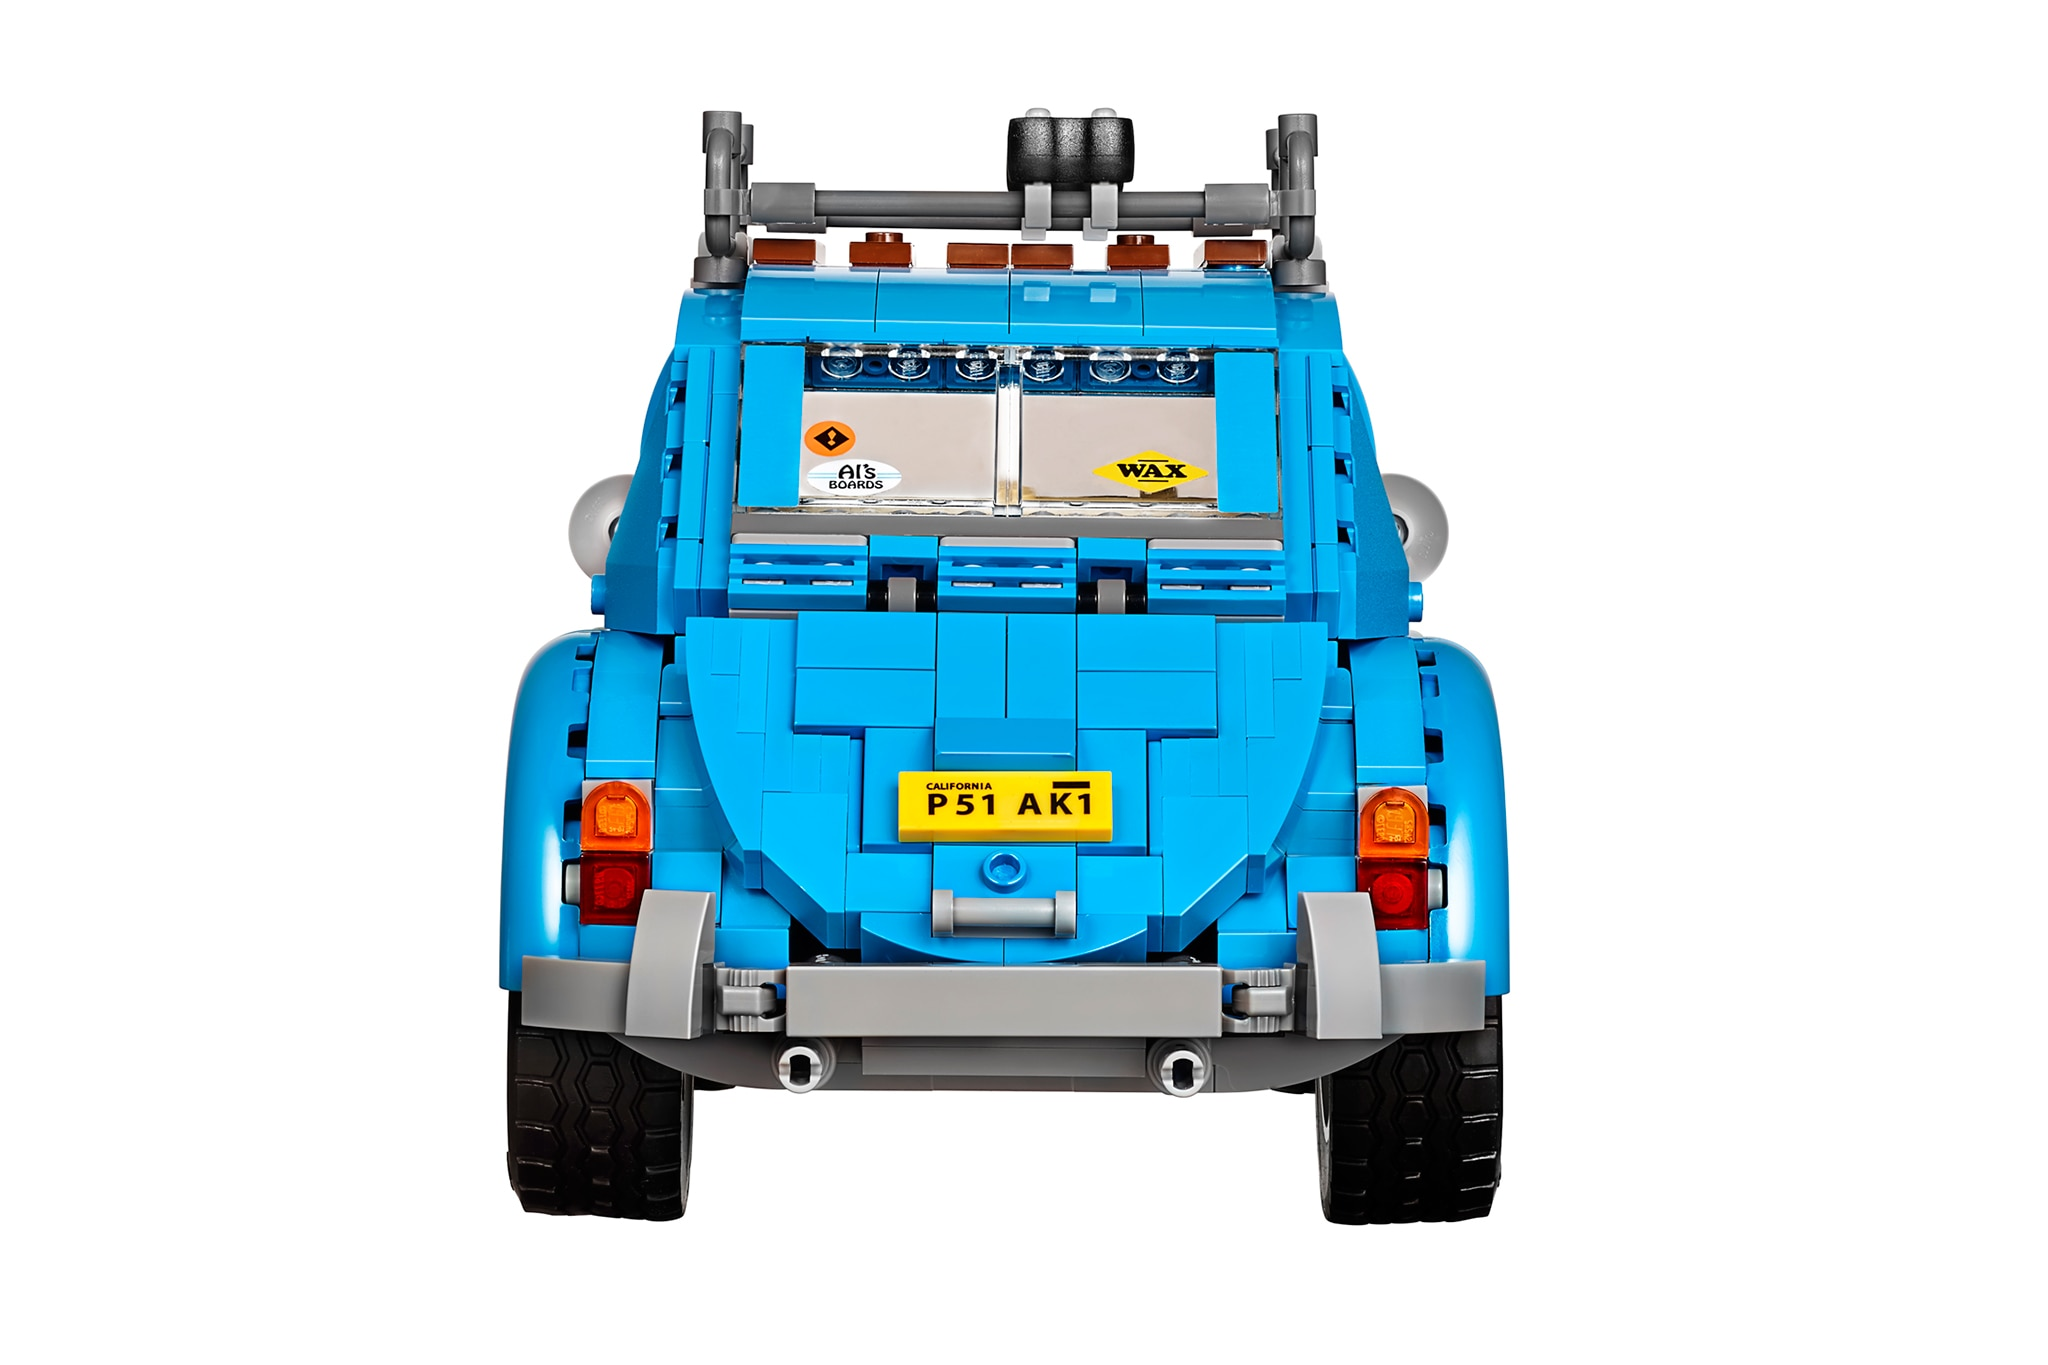 lego s new volkswagen beetle set will appeal to your inner. Black Bedroom Furniture Sets. Home Design Ideas